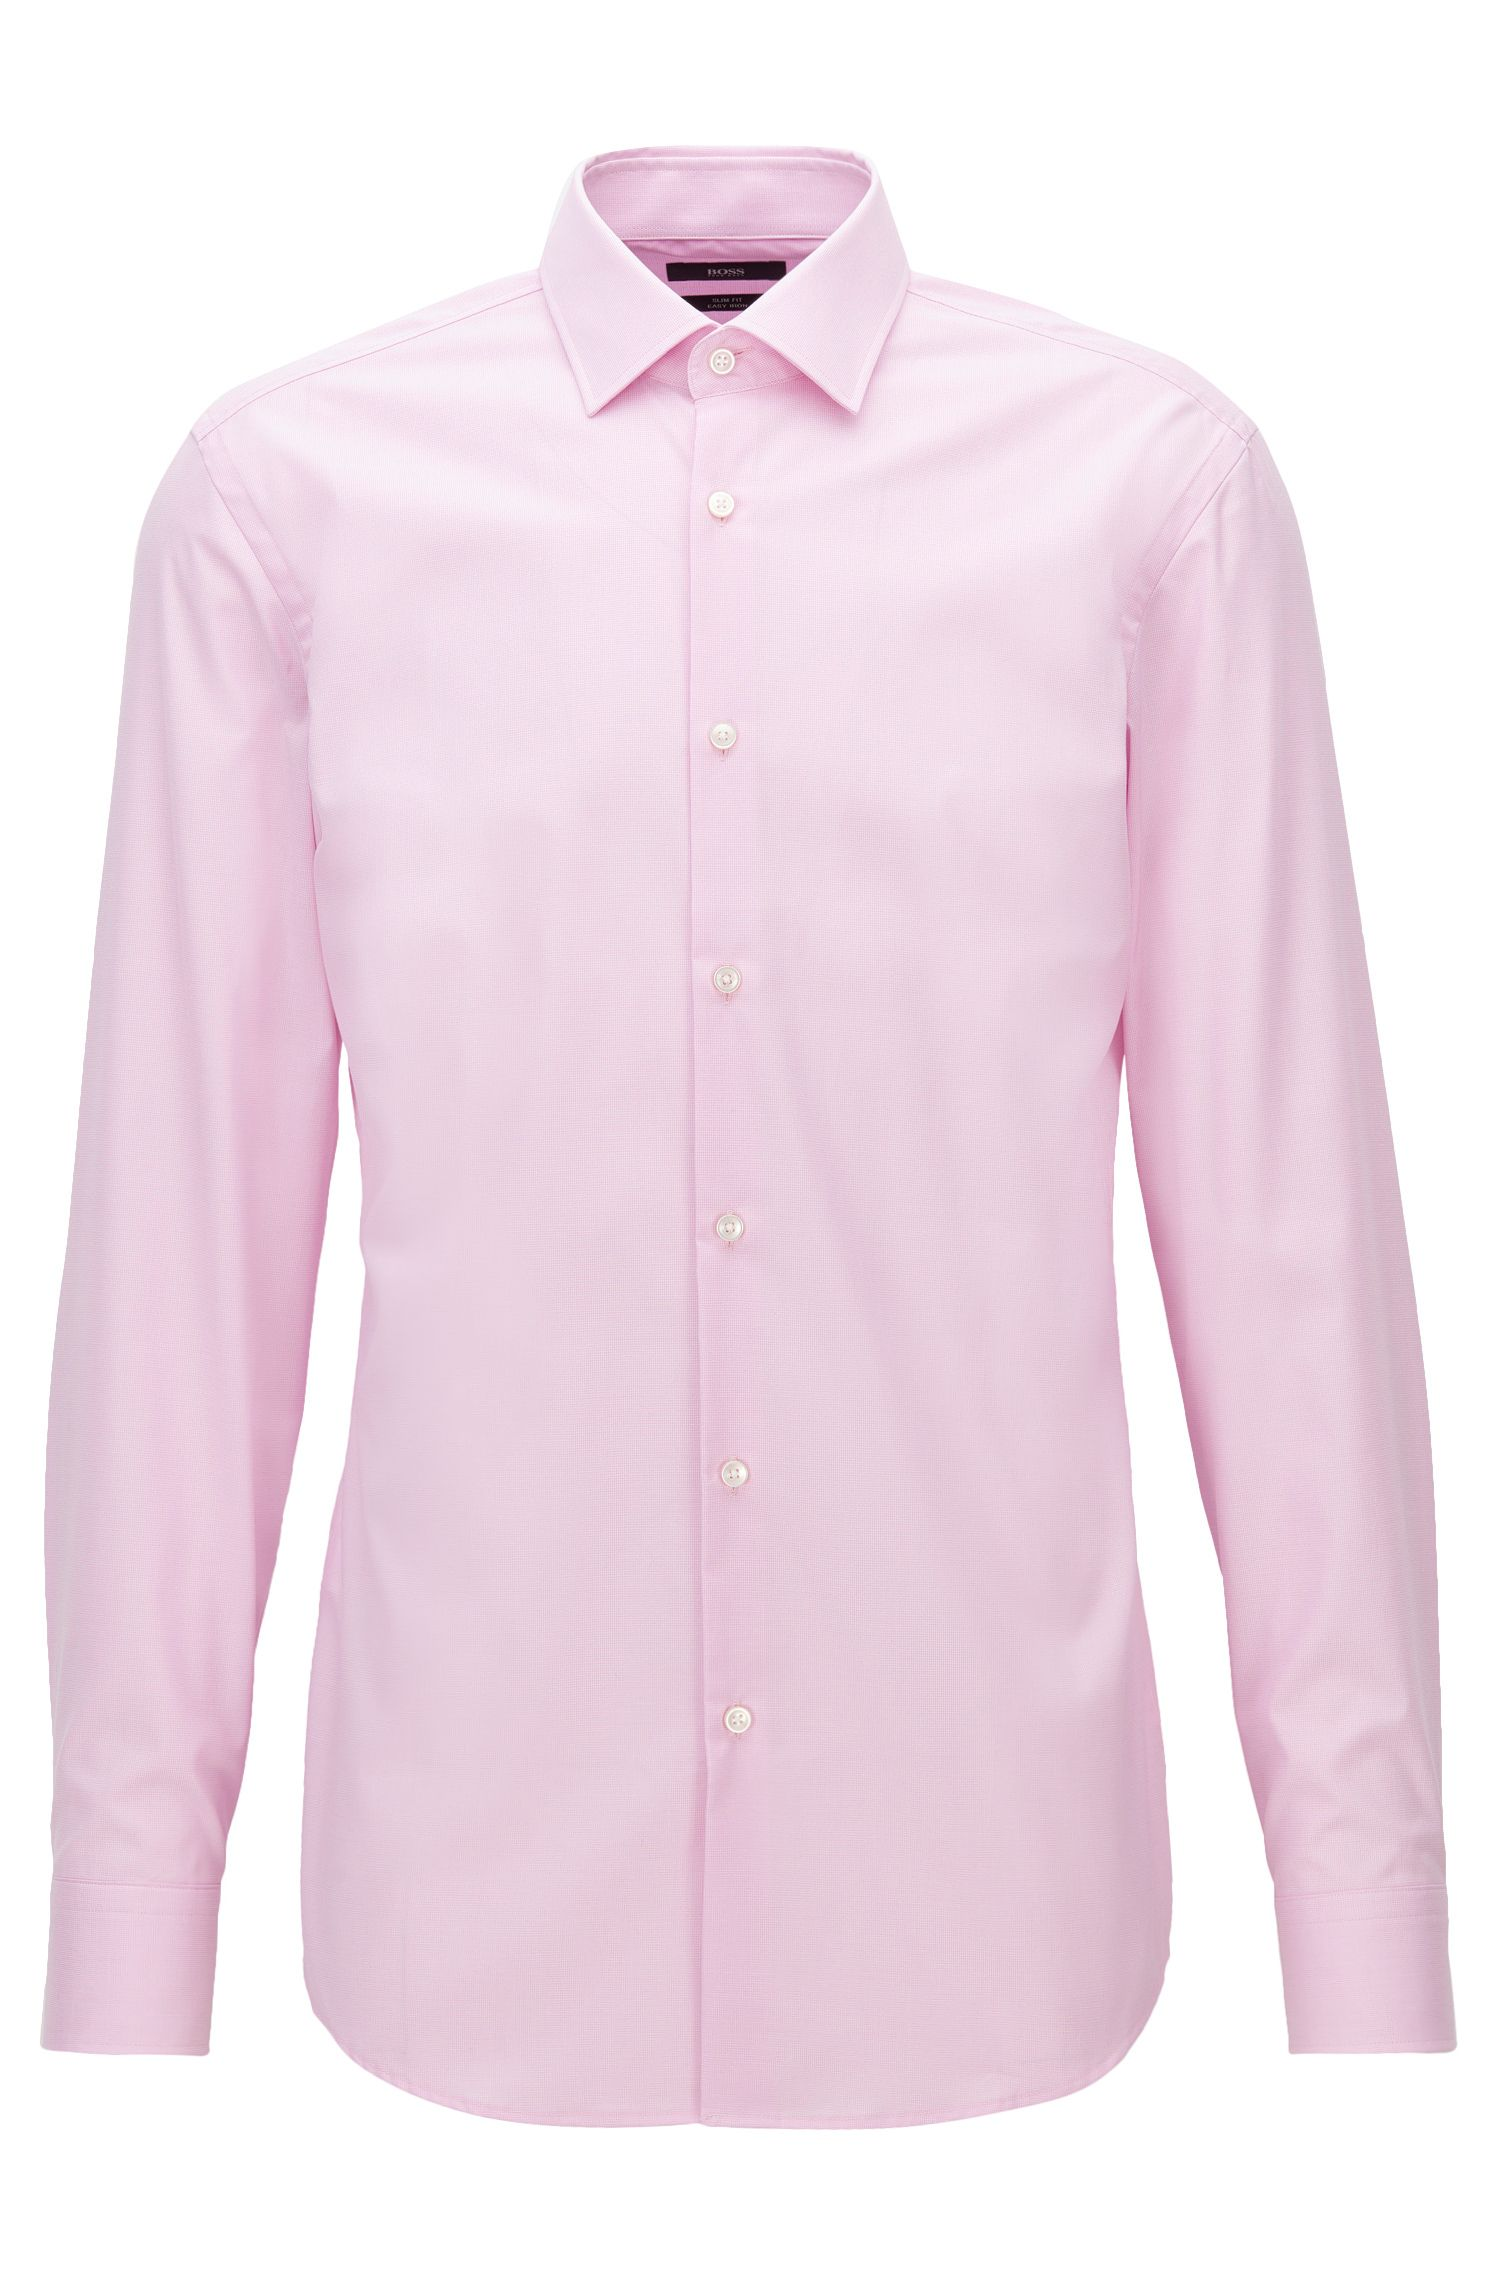 Finely checked cotton shirt in a slim fit, light pink